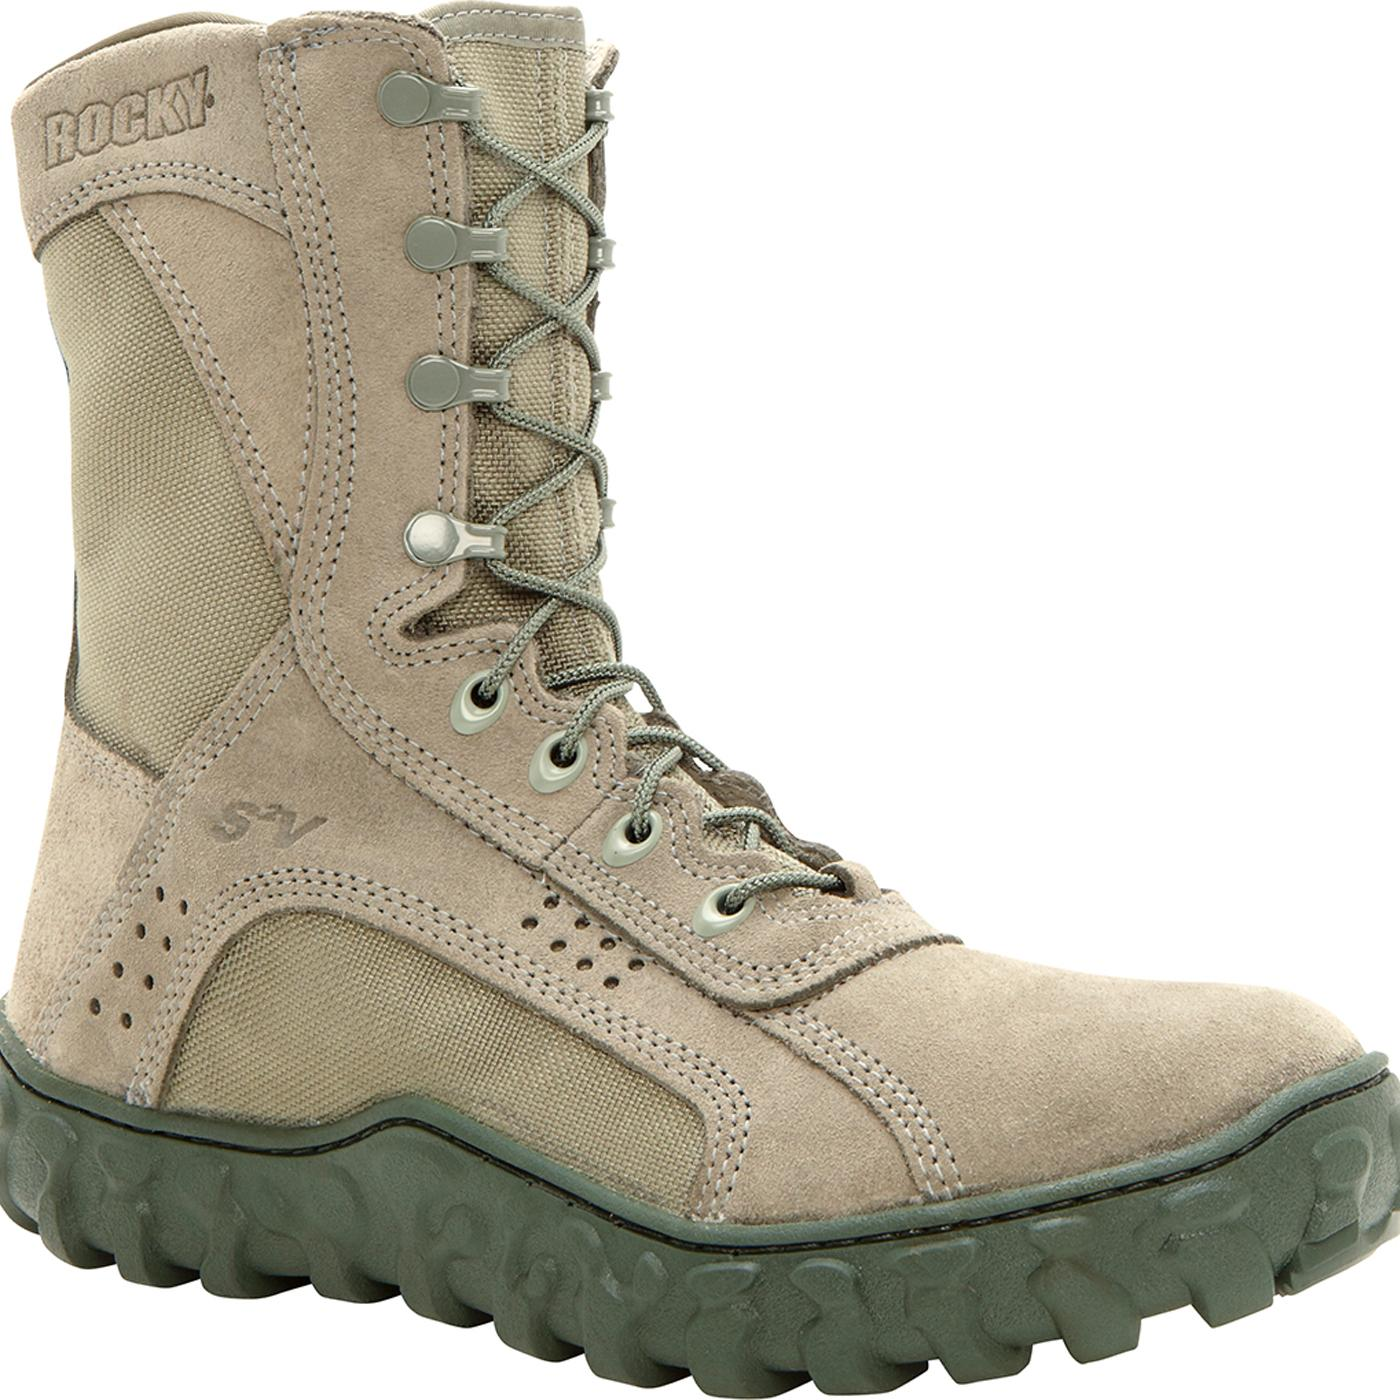 Sage Green Steel Toe Rocky S2v Military Boot Fq0006108